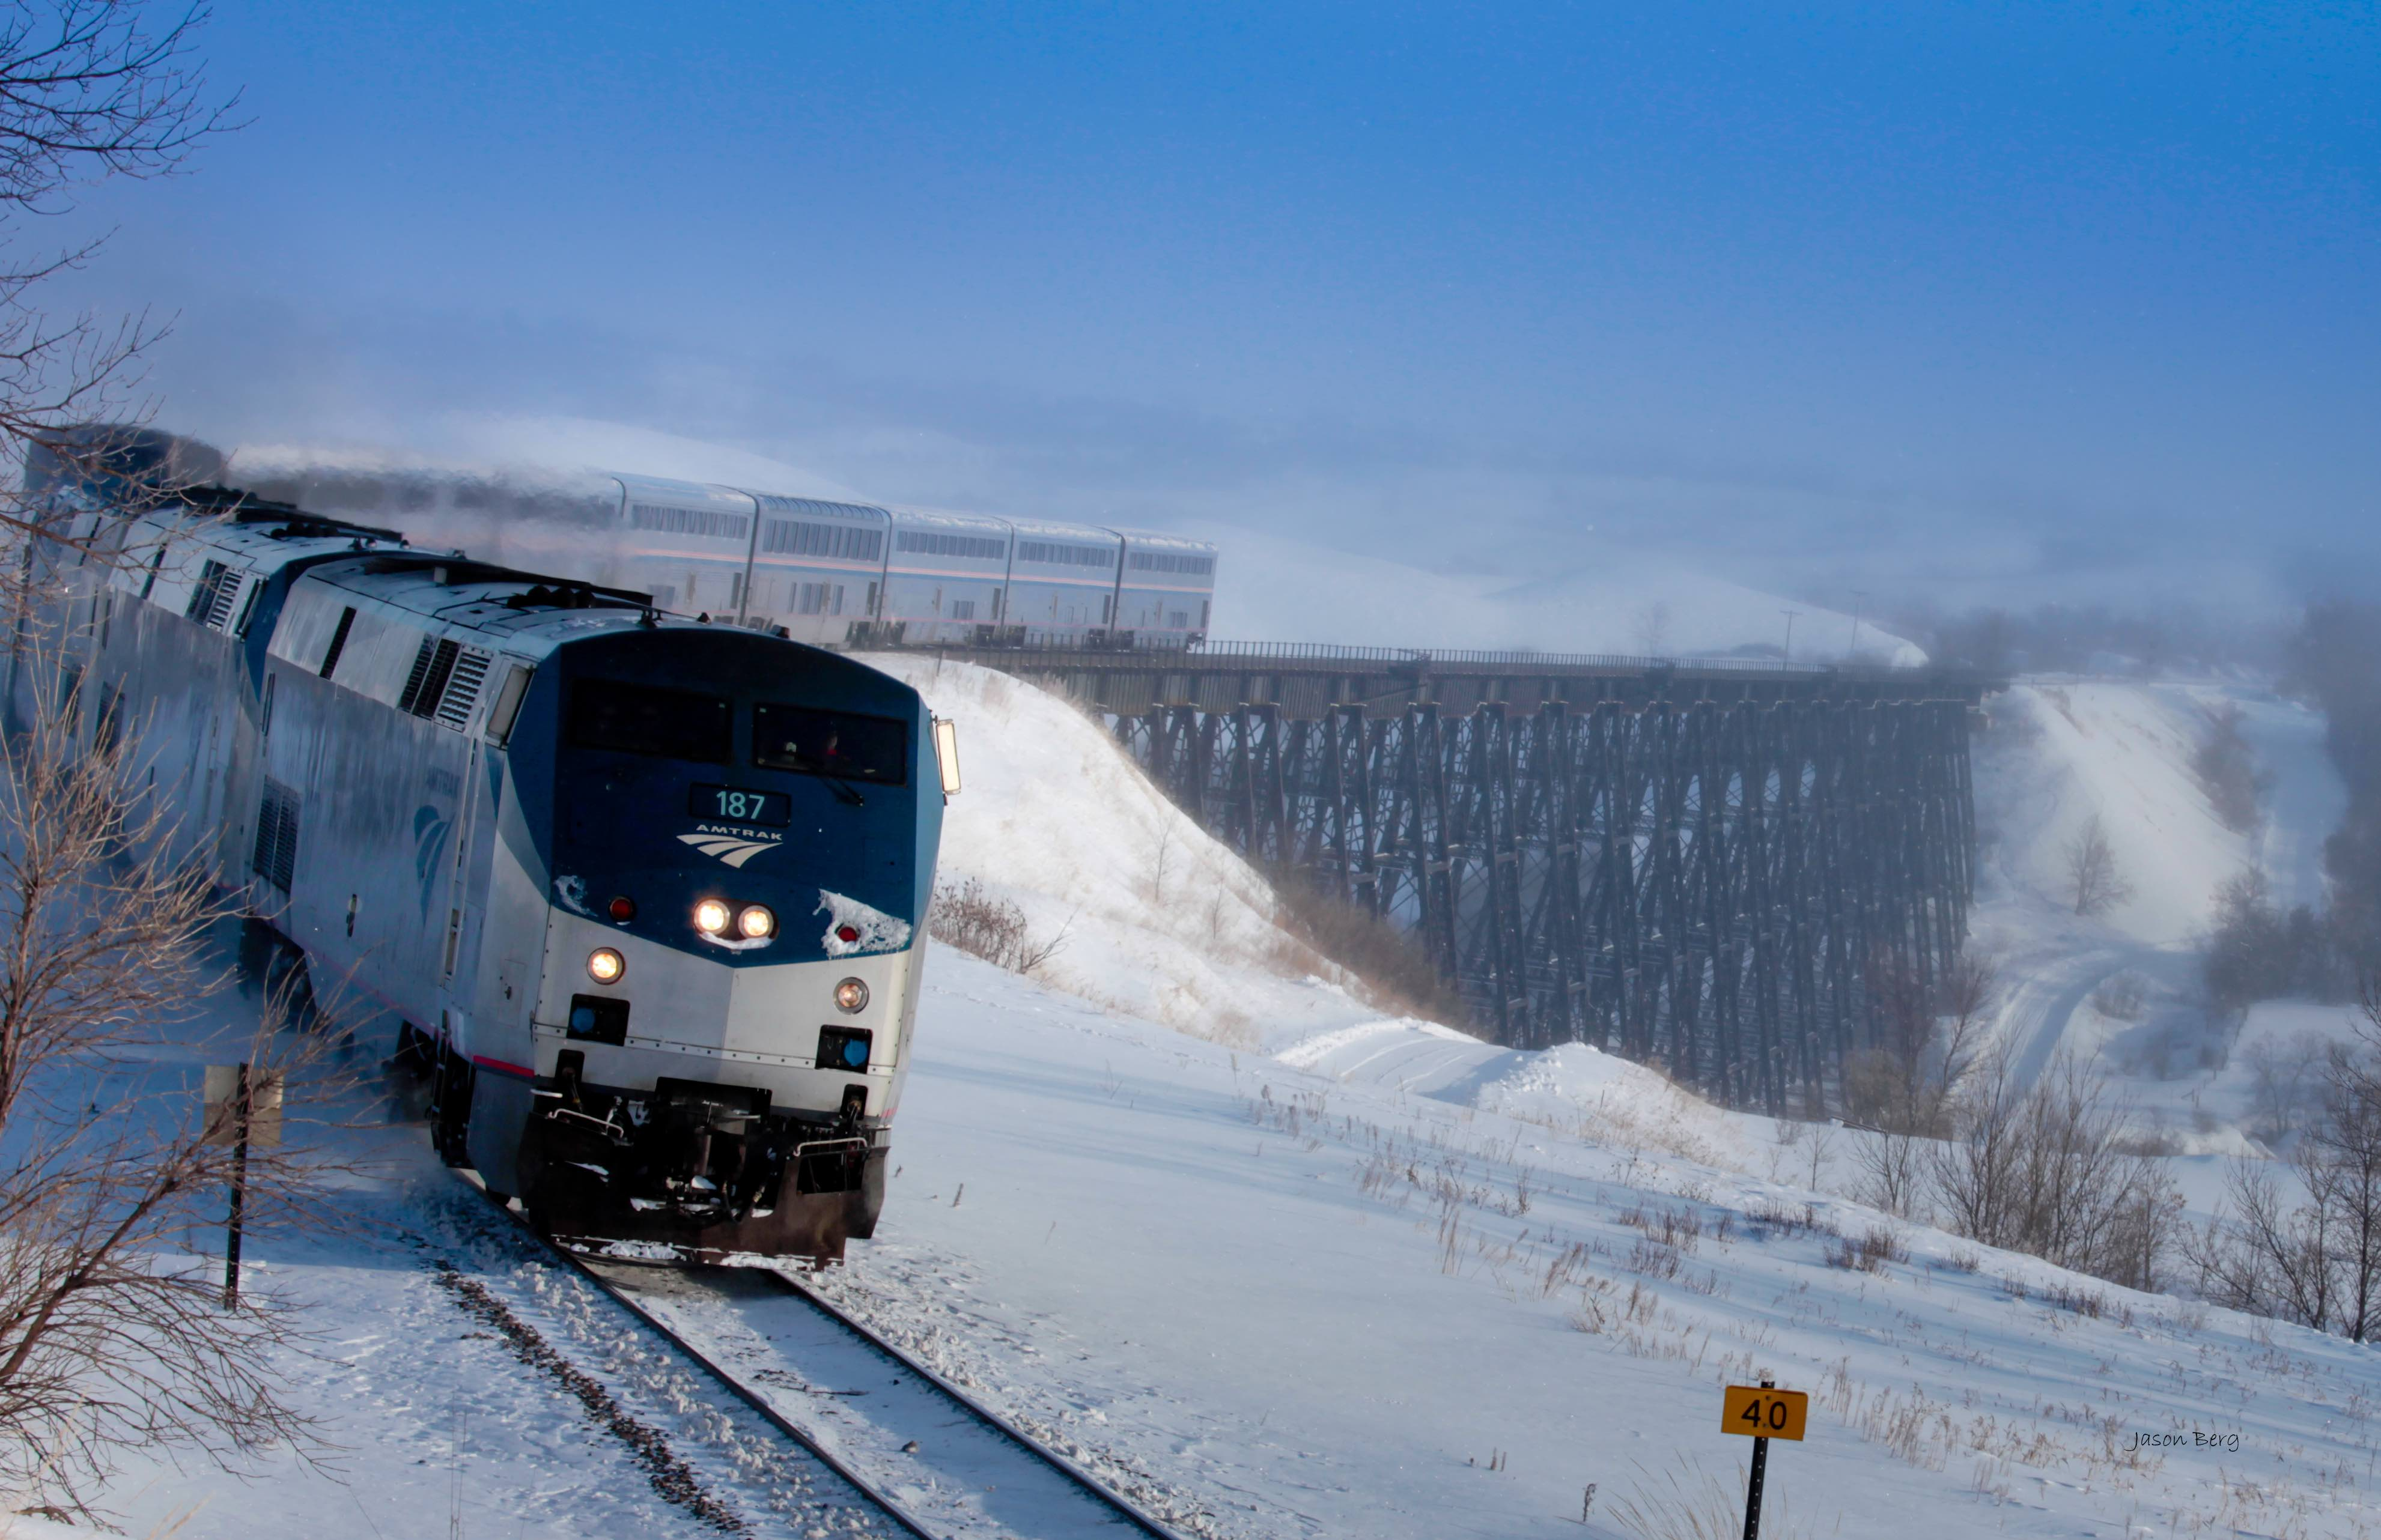 Amtrak's Coast Starlight Train Stuck In Snow For 37 Hours